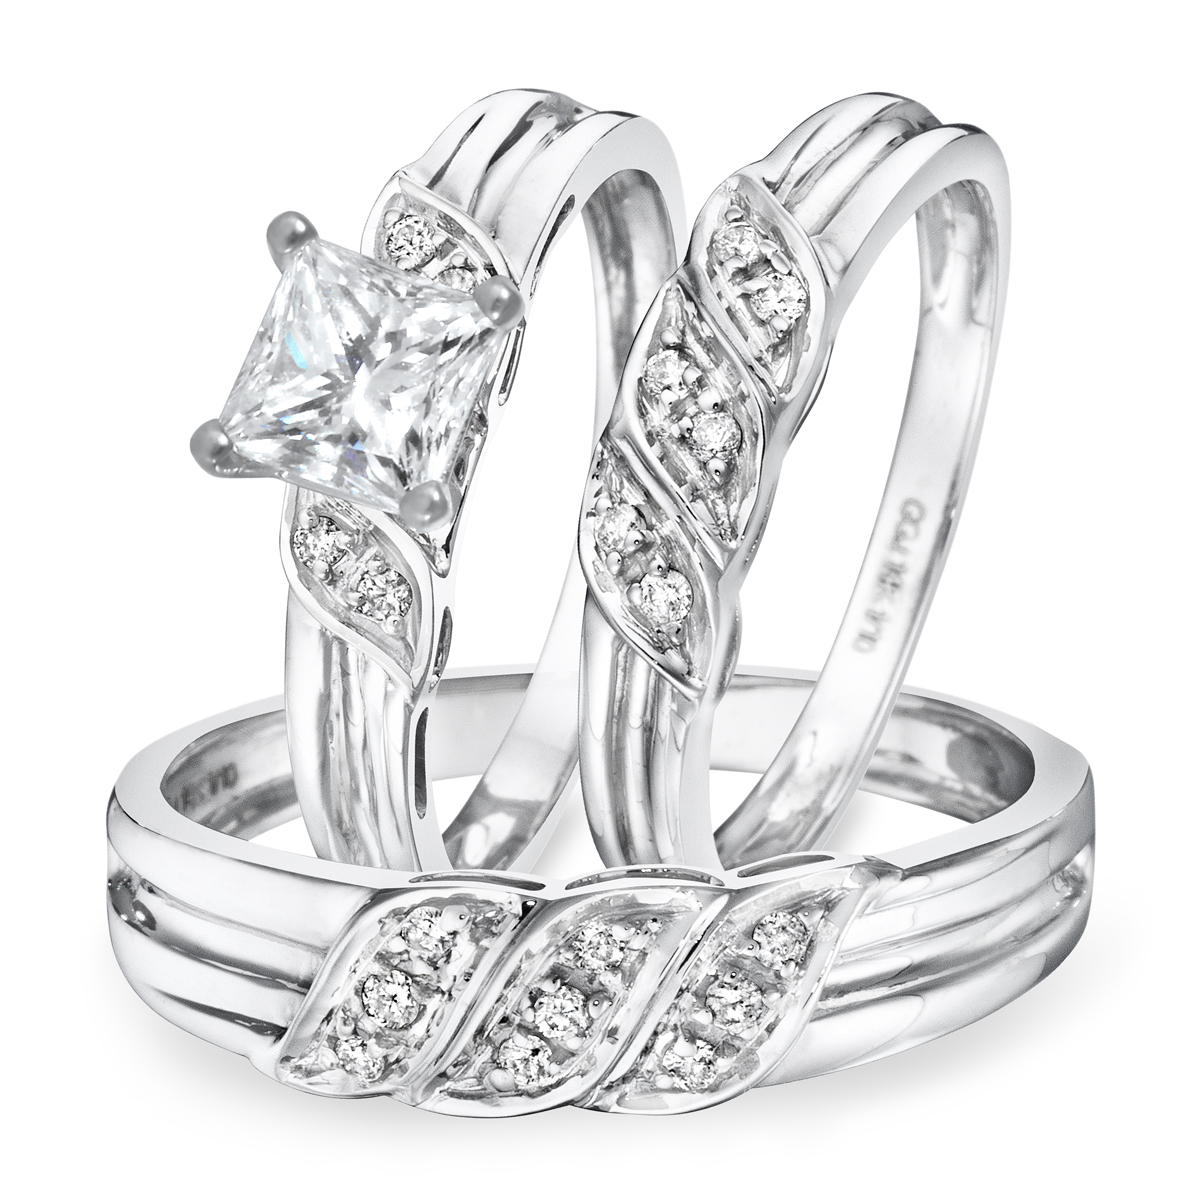 Buy Trio Wedding Rings Set Online Cheap Trio Wedding Rings Set